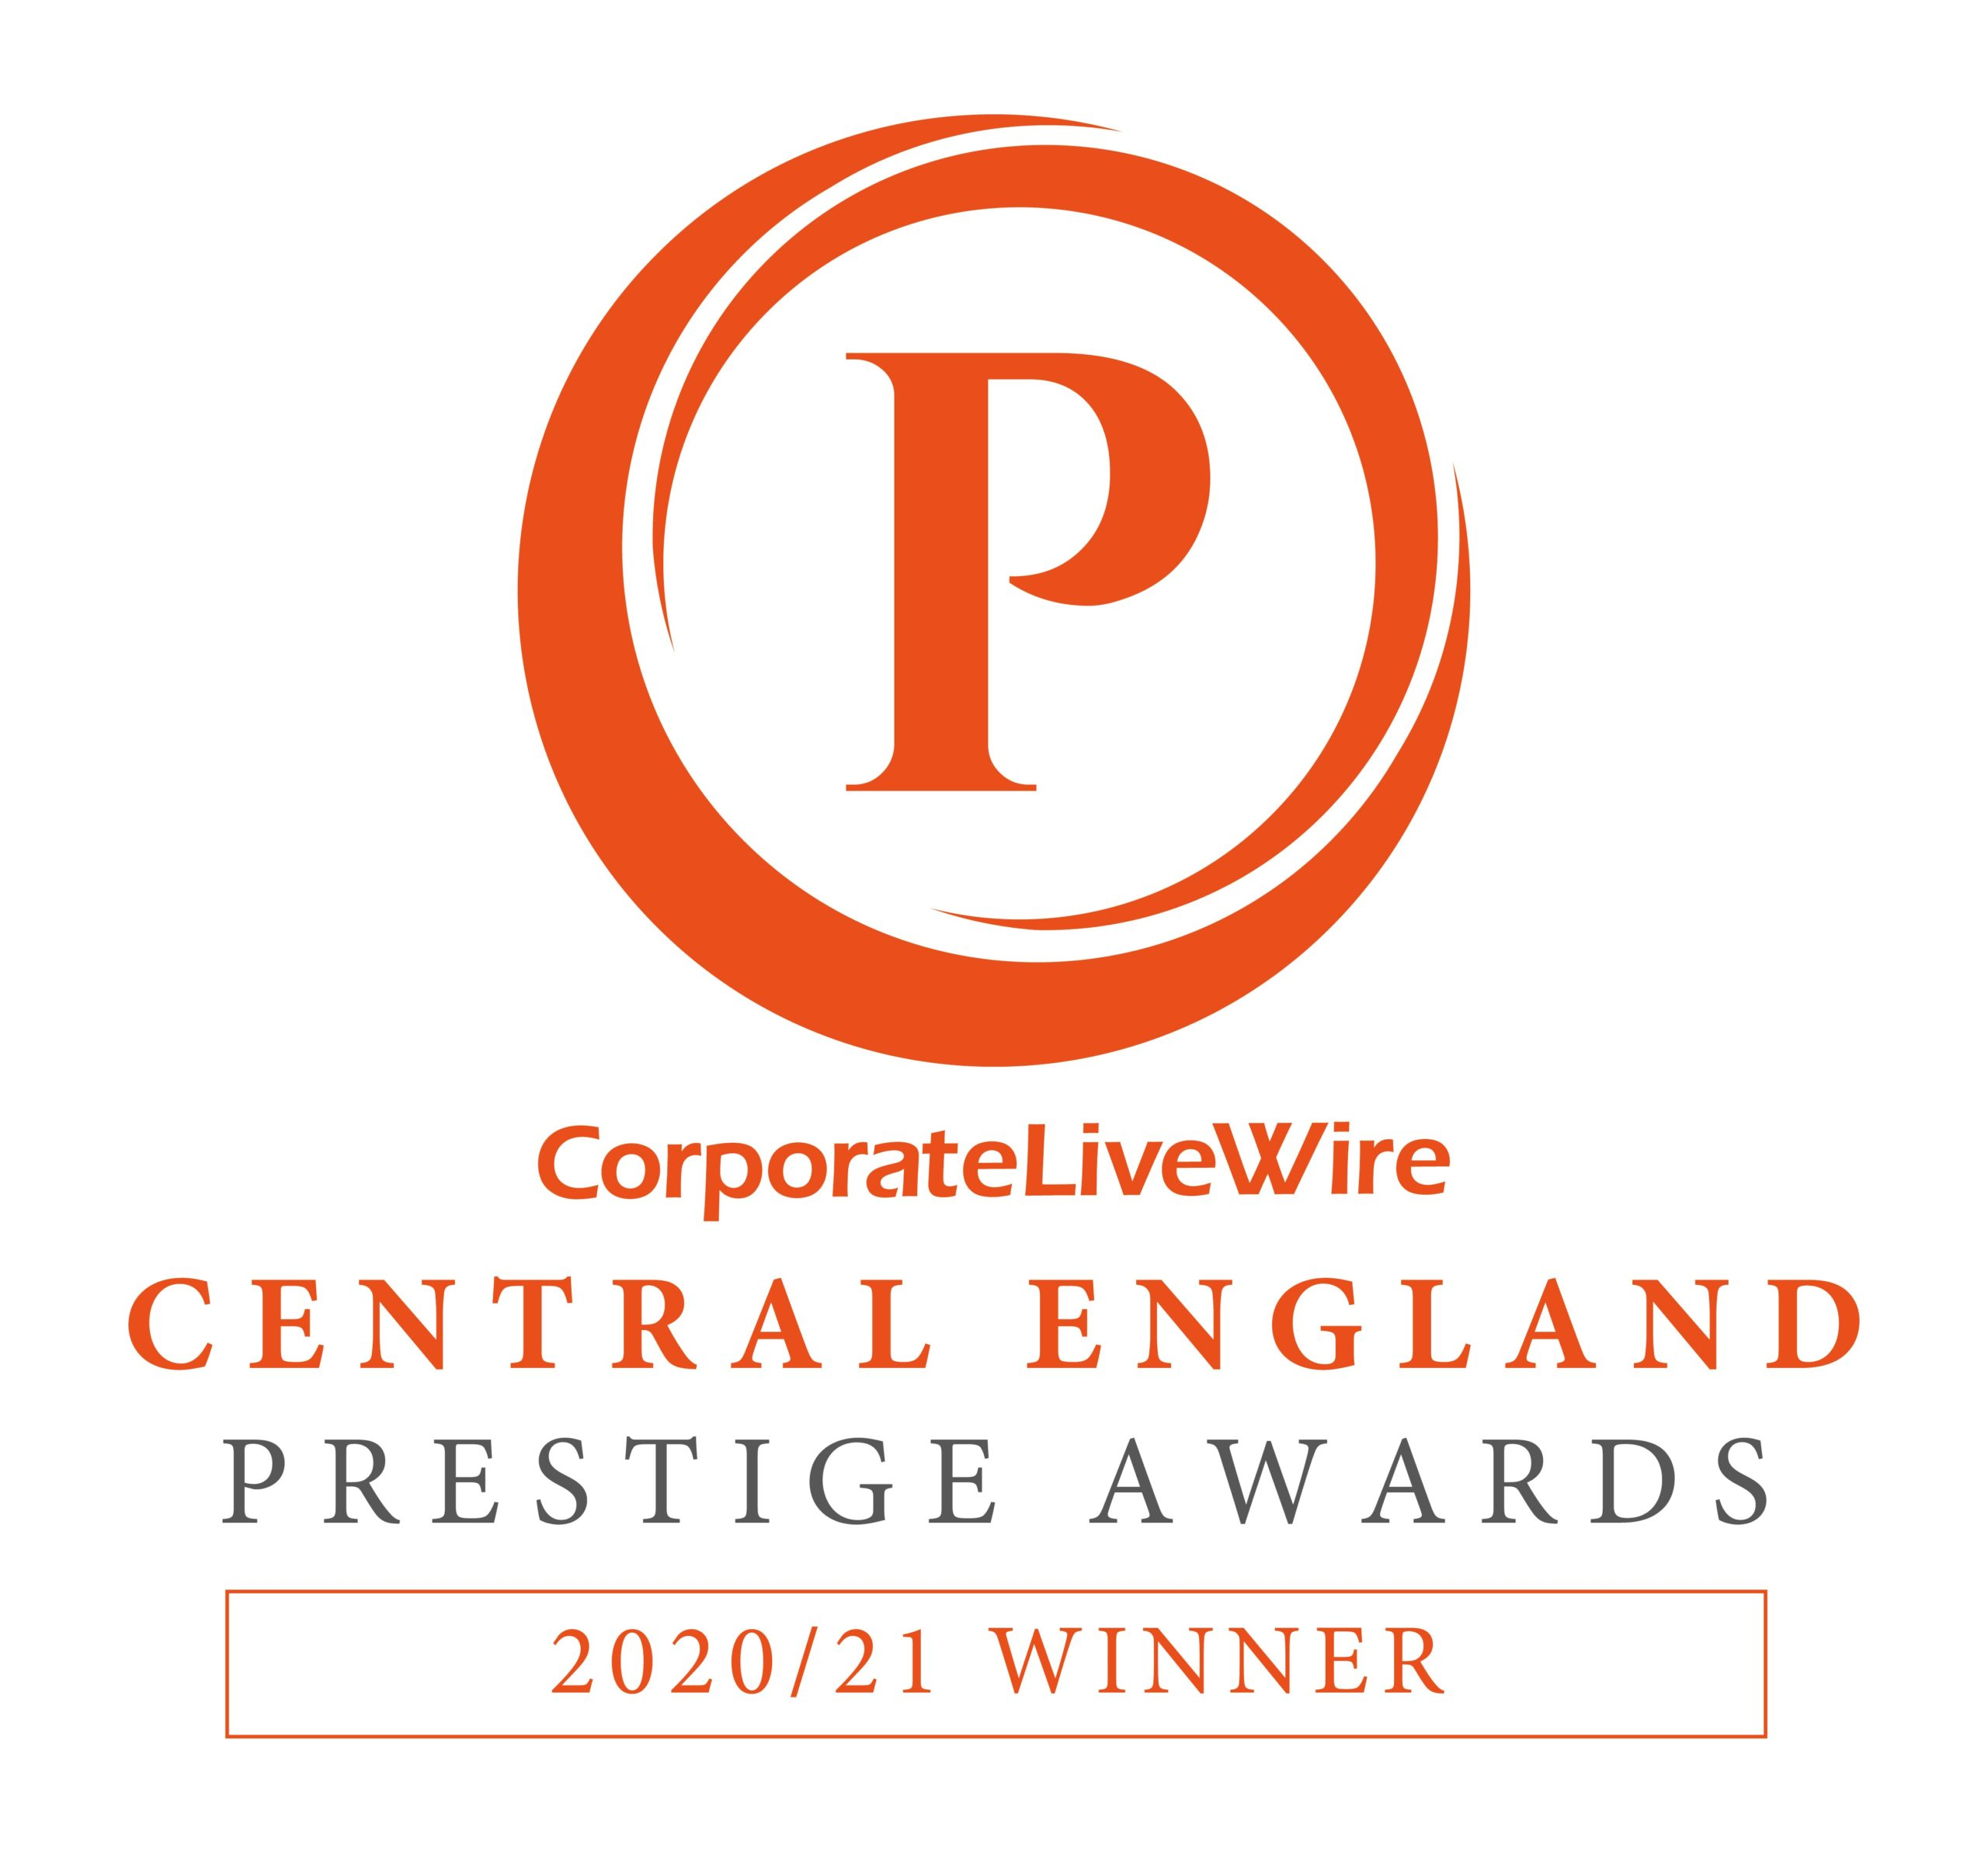 The People's Orchestra Wins Orchestra Of The Year At Prestige Awards